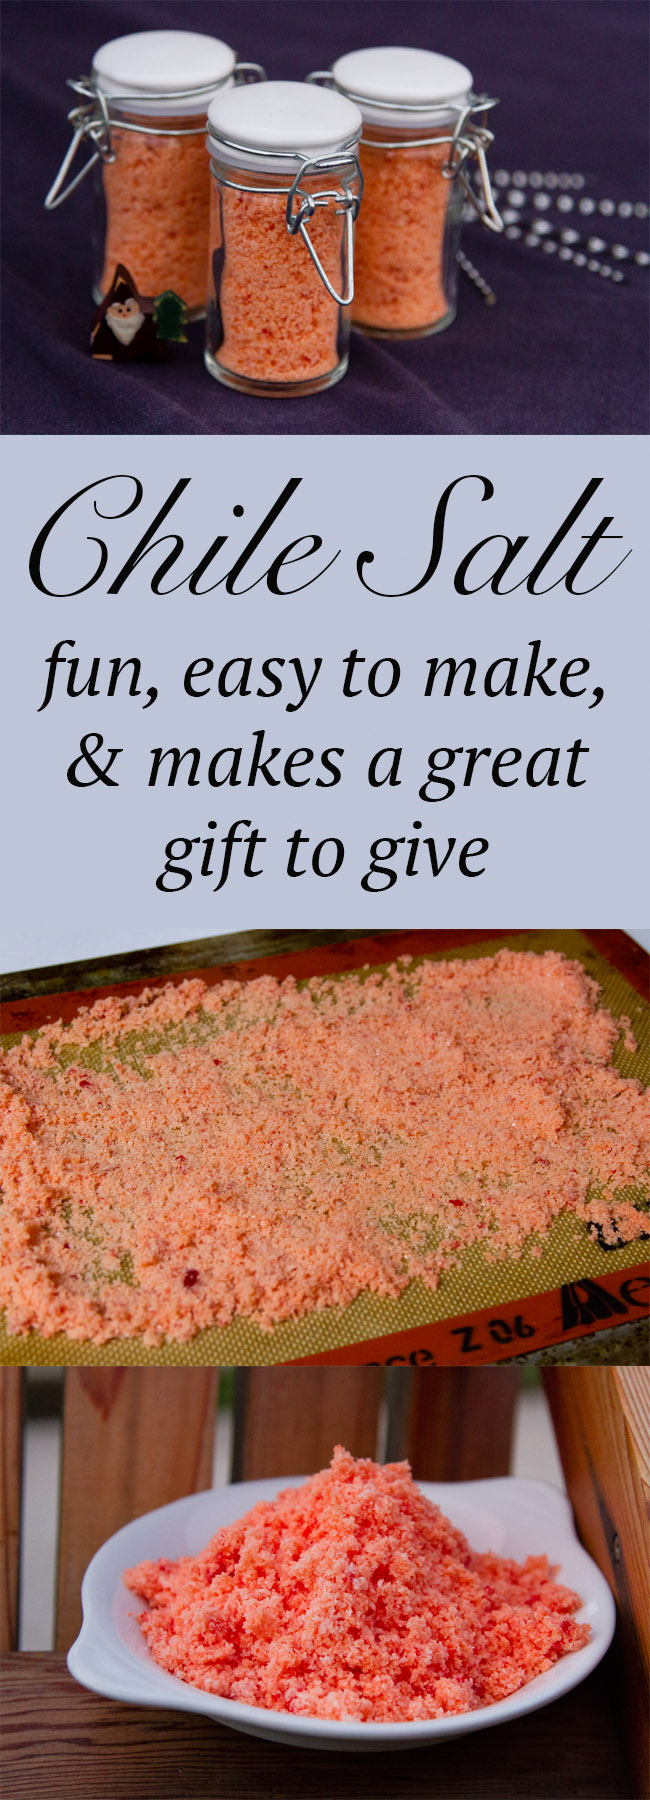 Pinterest long pin with three images for Chile Salt and the title in the middle